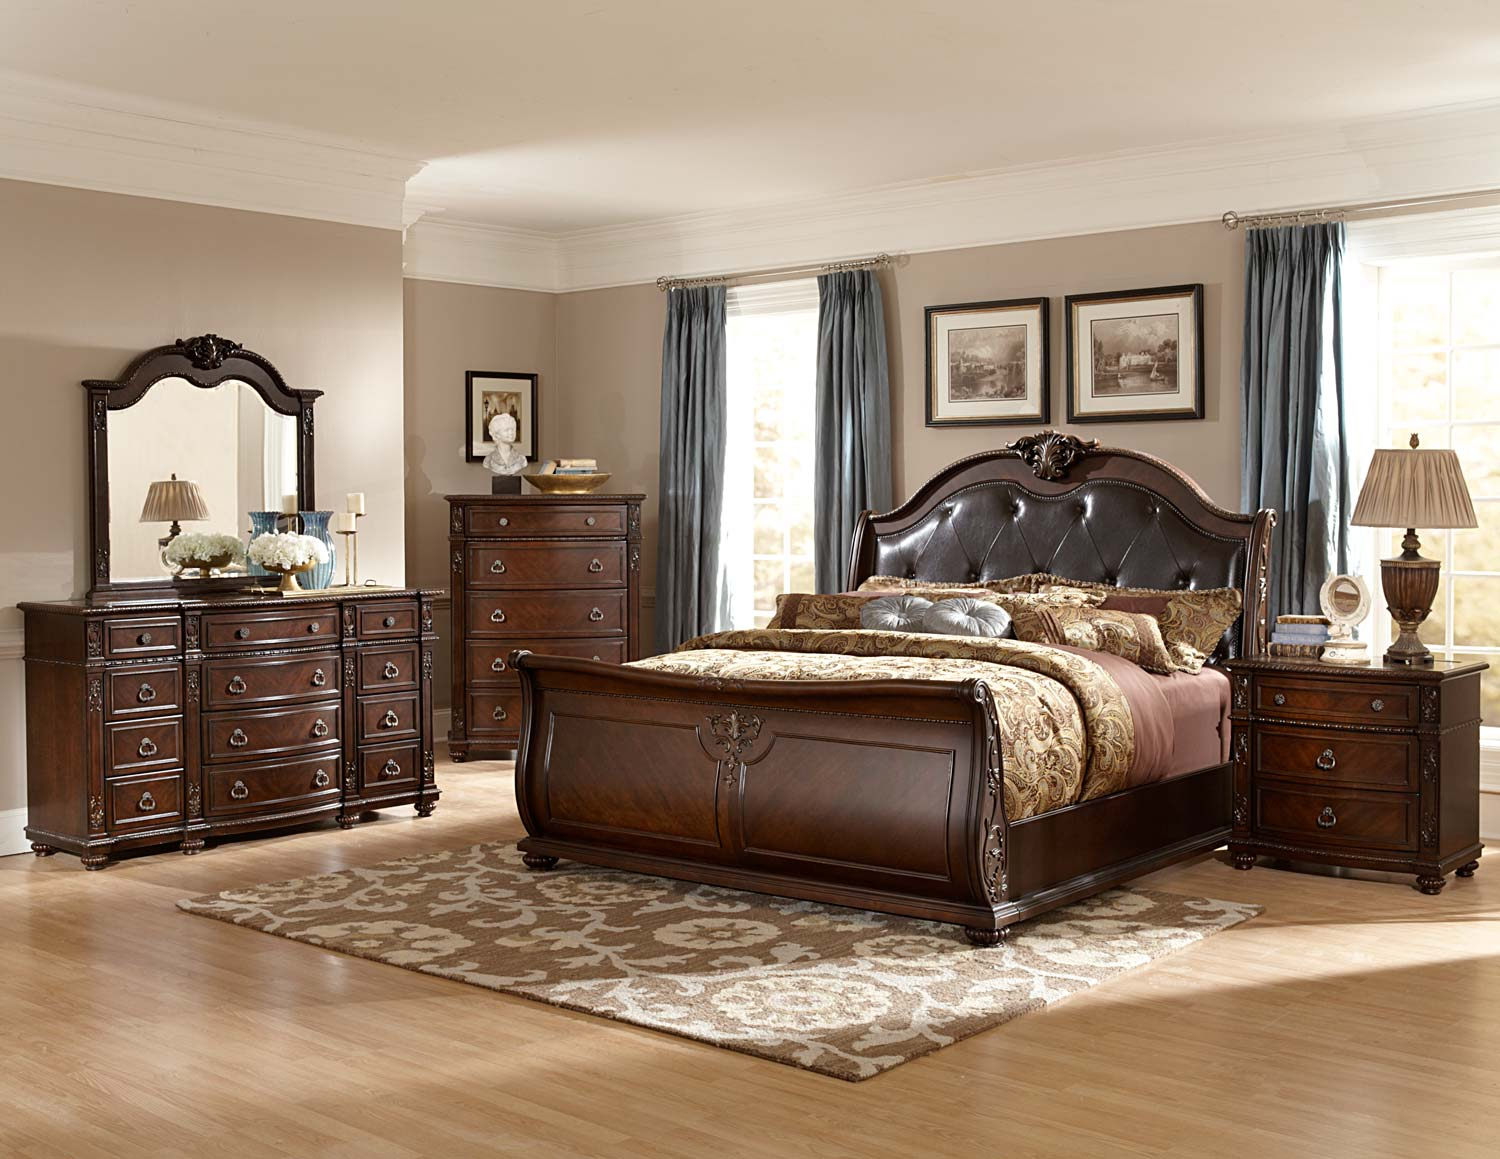 Homelegance hillcrest manor sleigh bedroom set cherry for Cherry furniture